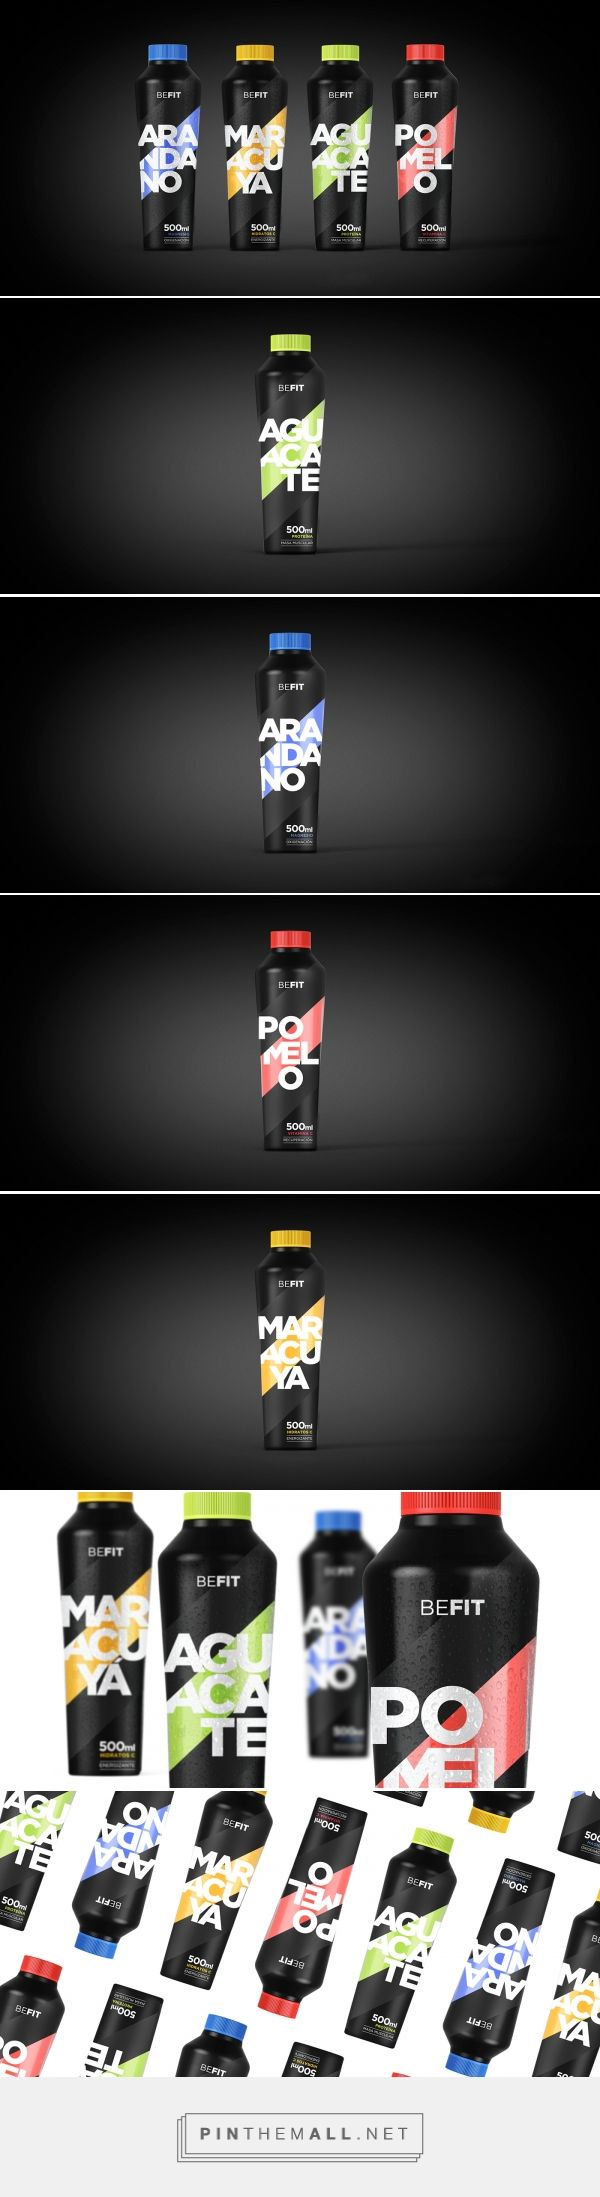 Branding, graphic design and packaging for Befit on Behance curated by Packaging Diva PD. Desarrollo de naming, packaging estructural y gráfico de zumos naturales para deportistas. Packaging design concept.